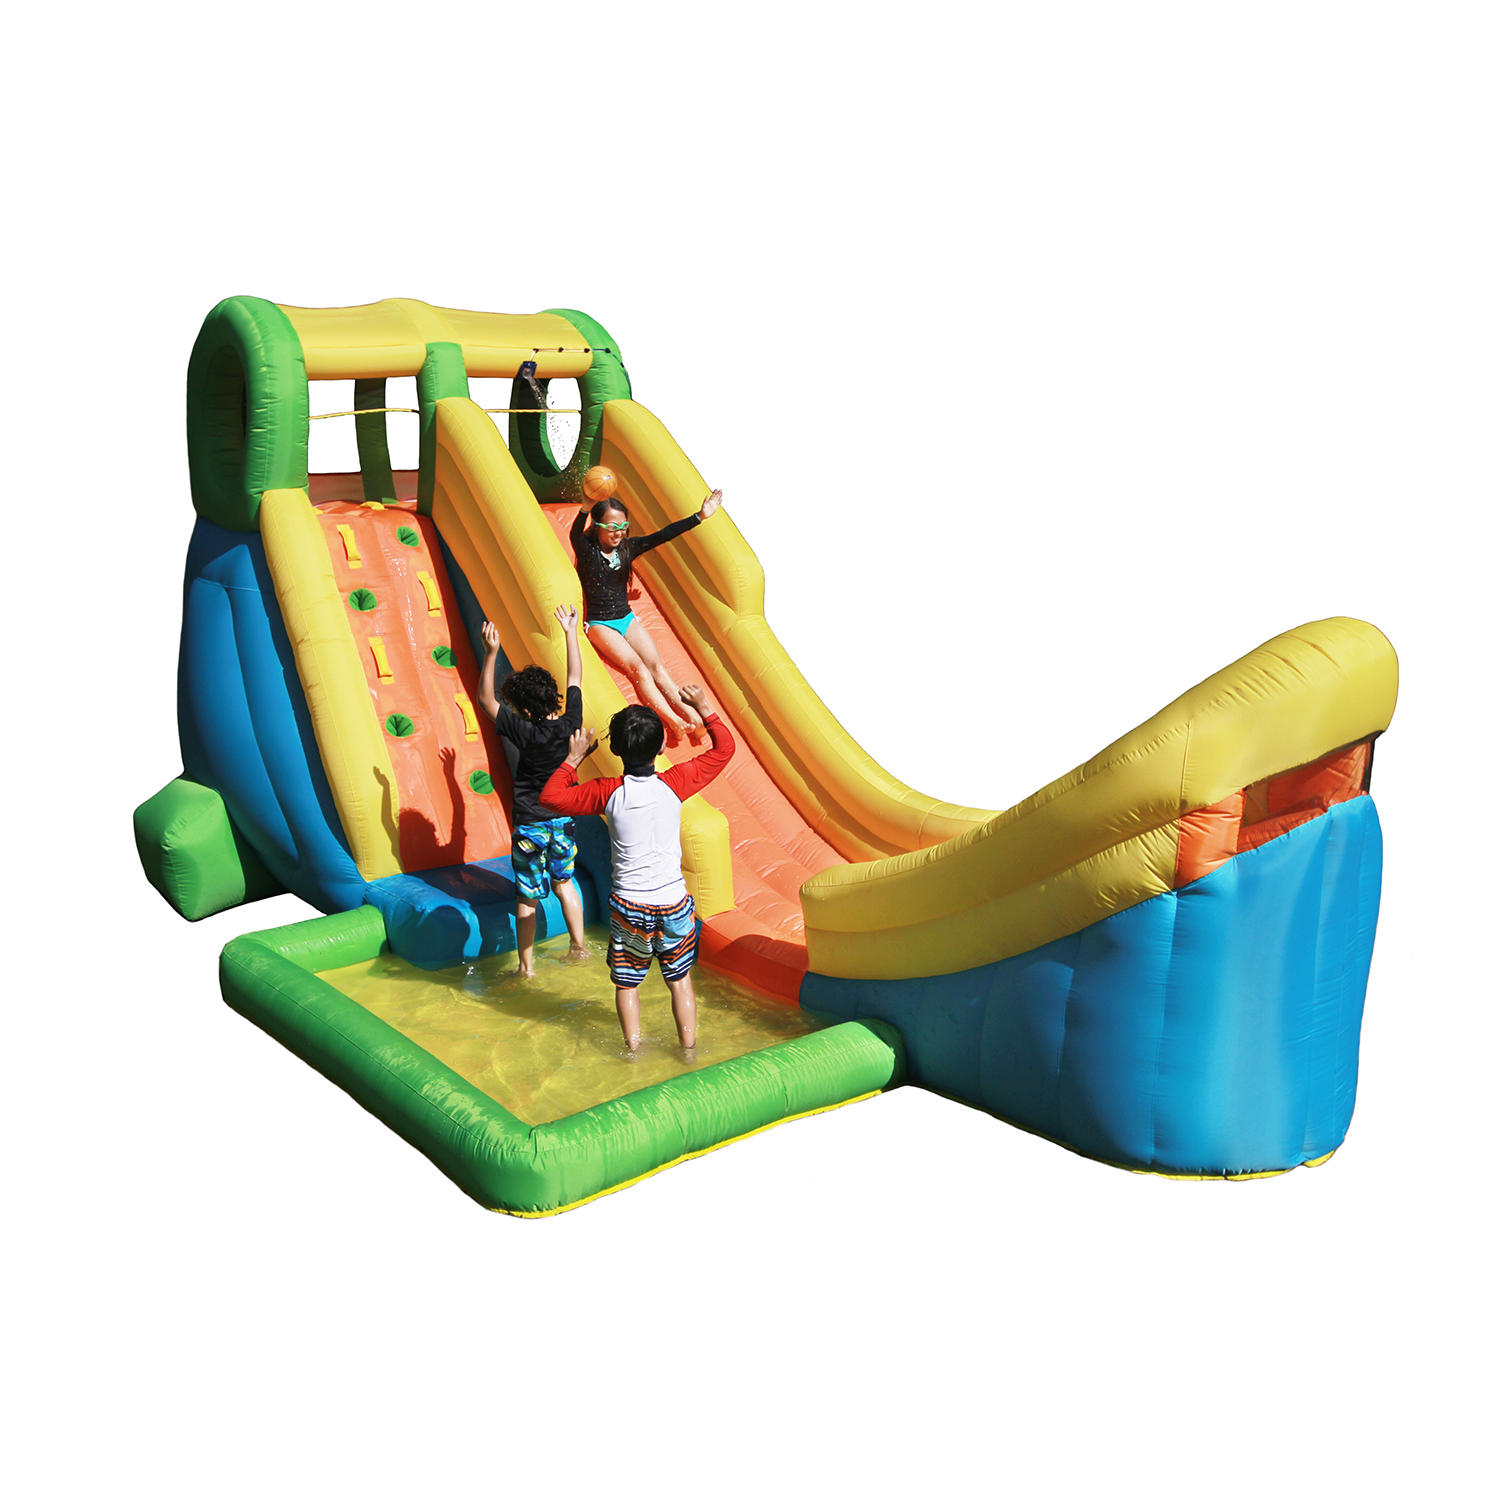 Sportspower Inflatable Half Pipe Outdoor Water Slide with Splash Pool